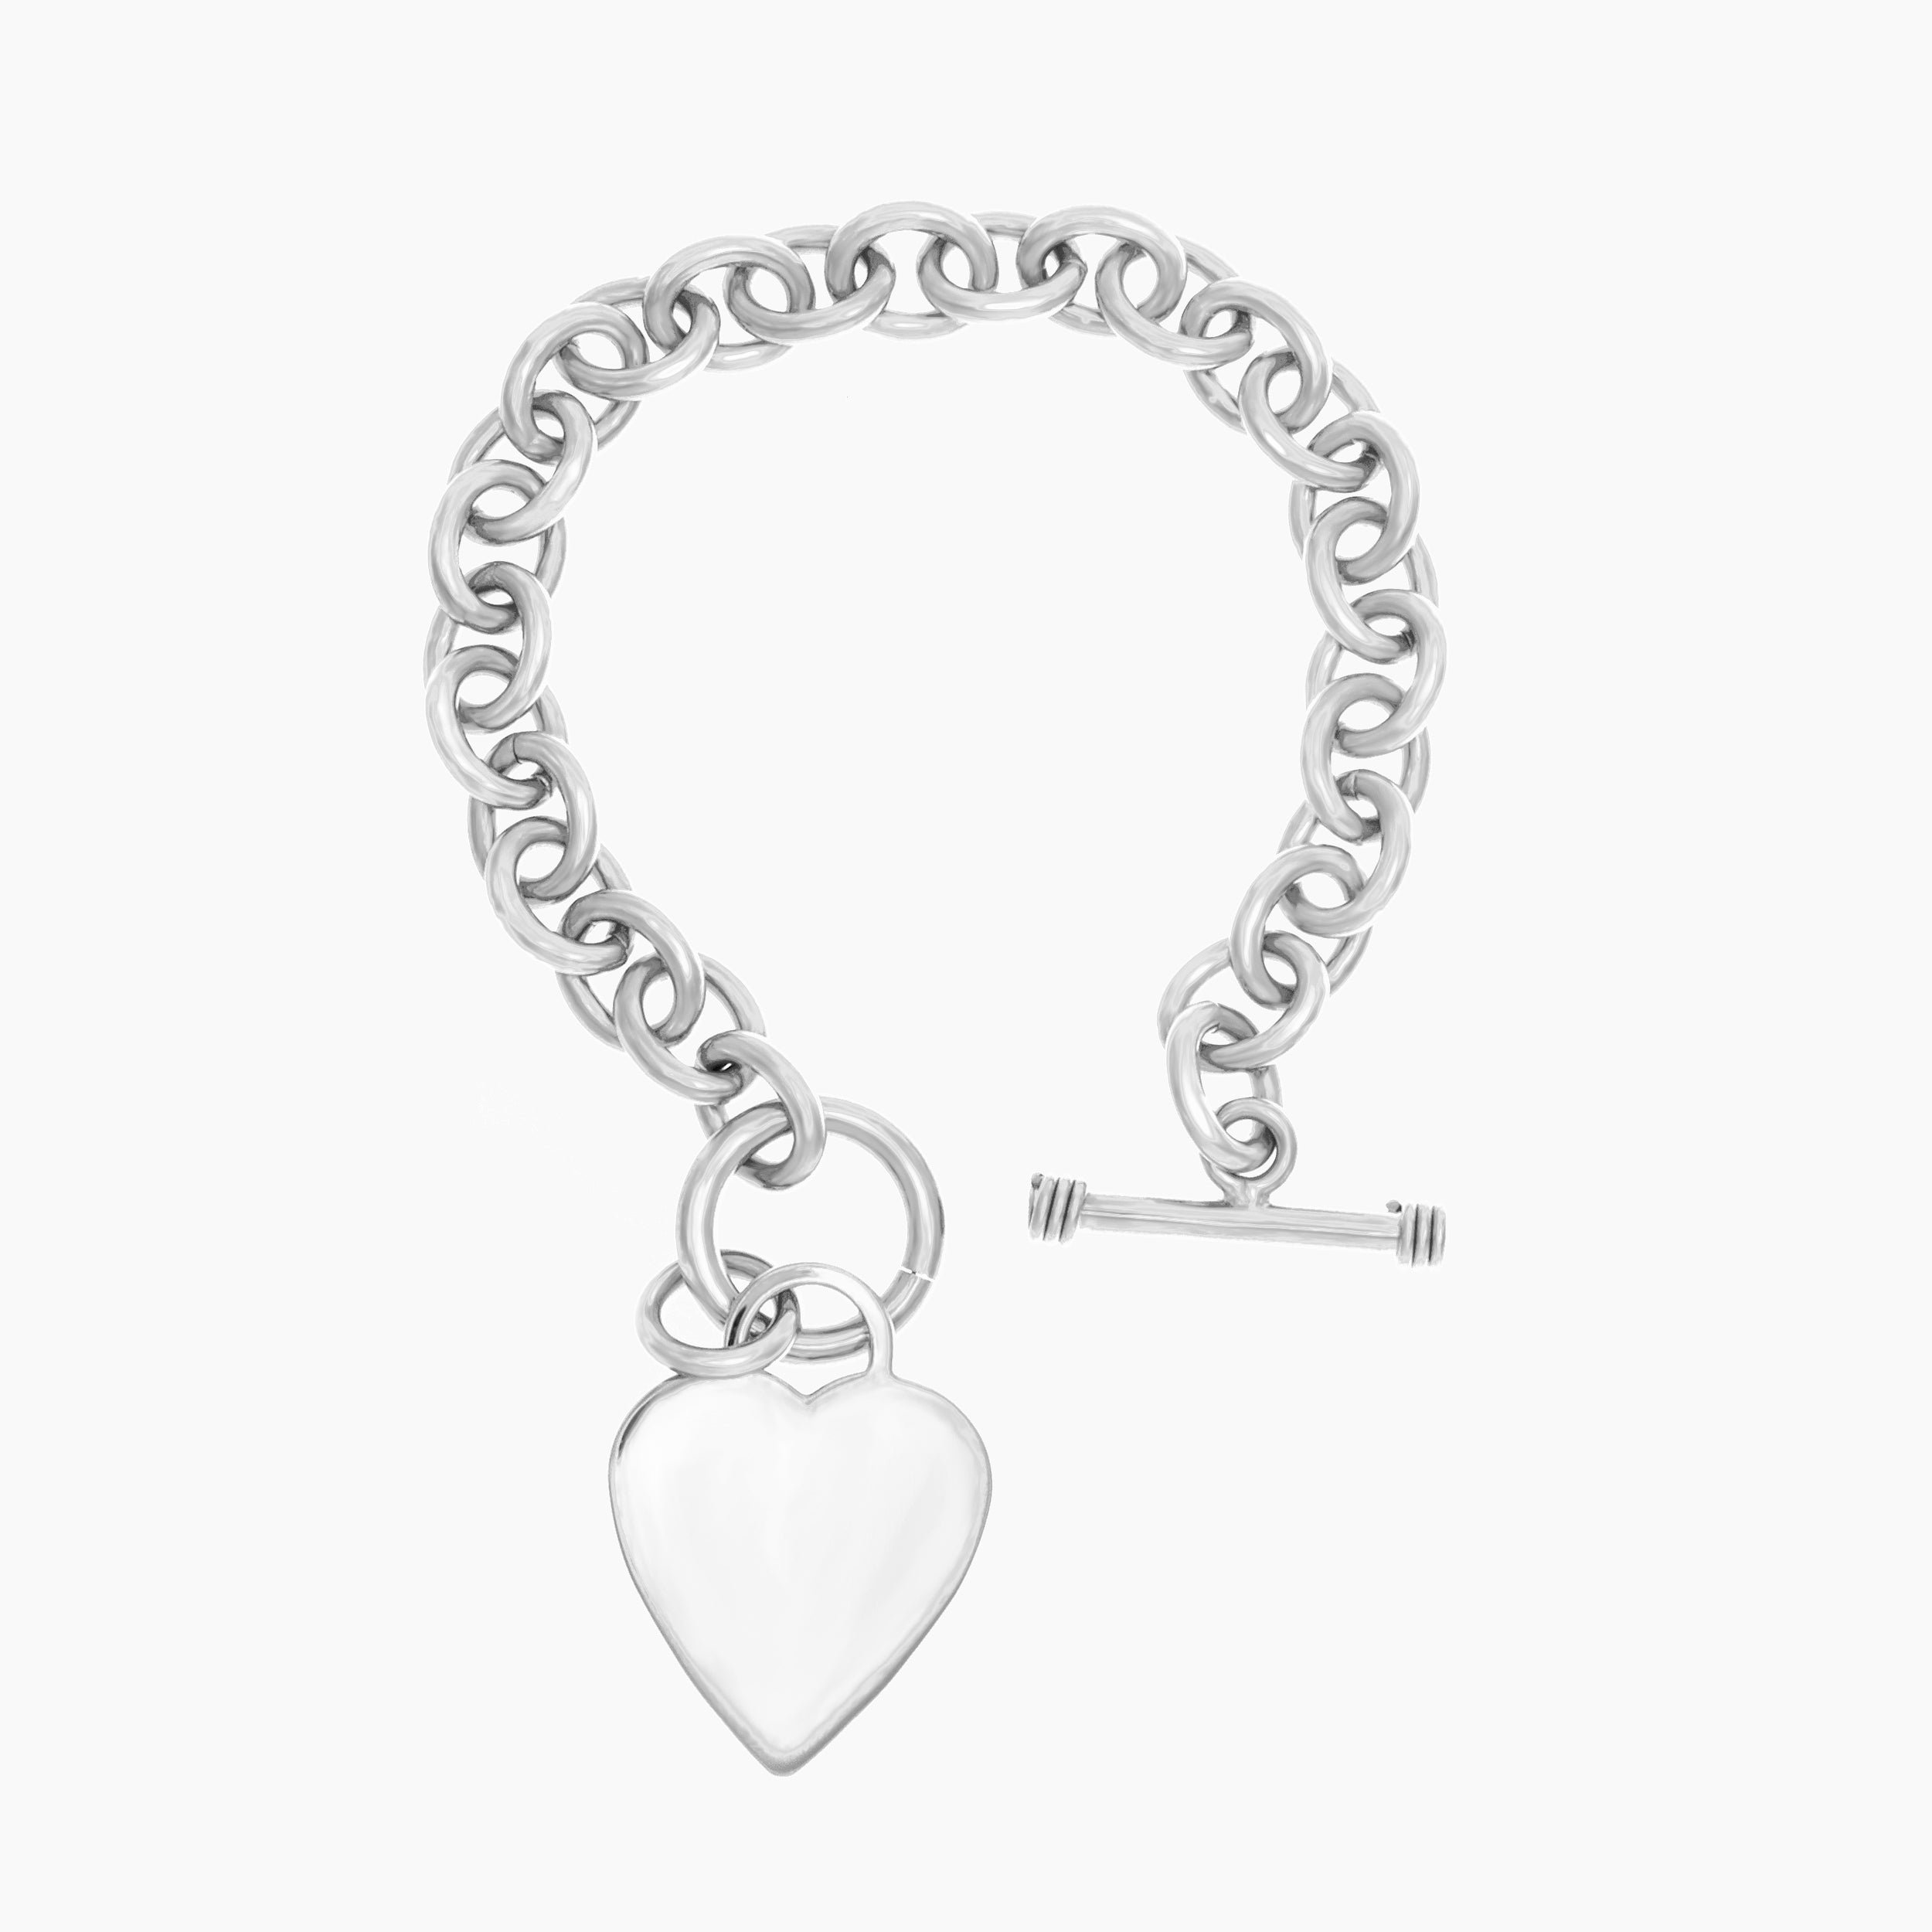 Sterling Silver 8 Inch Heart Toggle Bracelet Free Shipping Today 1092461